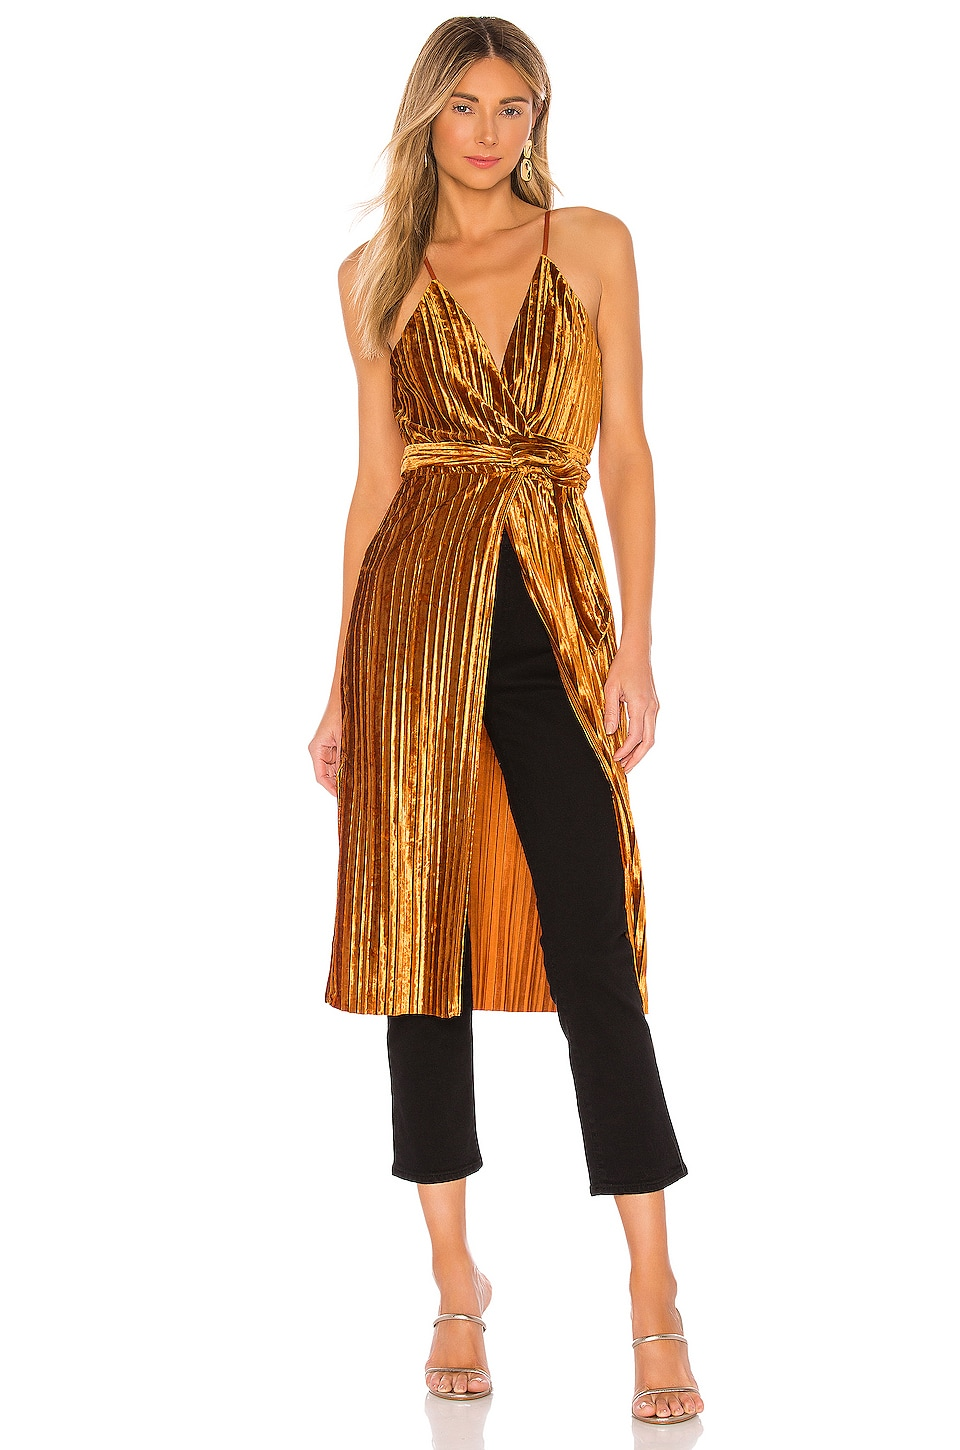 House of Harlow 1960 x REVOLVE Pearl Maxi Top in Rust Red